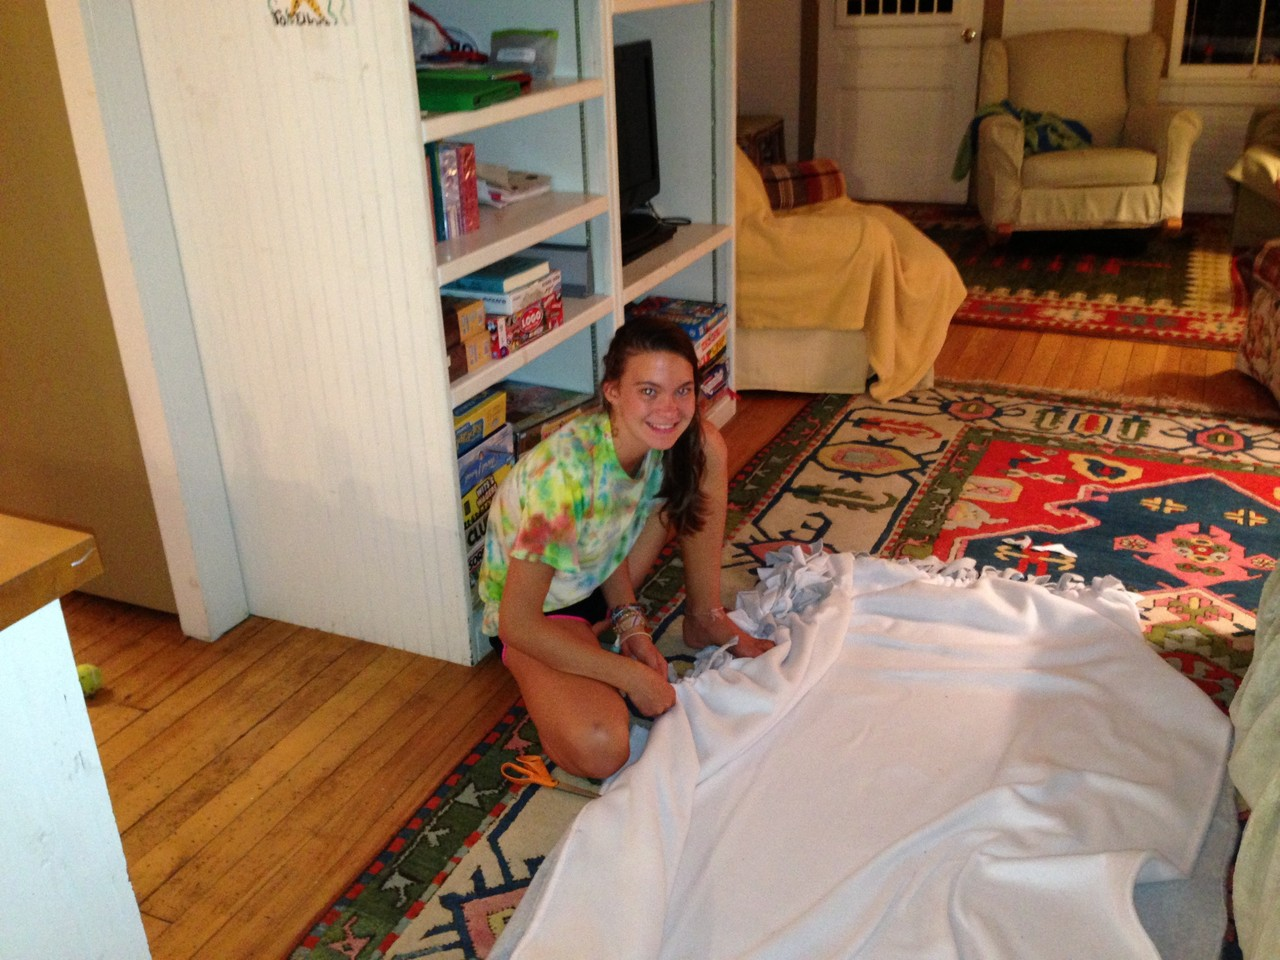 Ellie makes a blanket like Cindy Wagner's